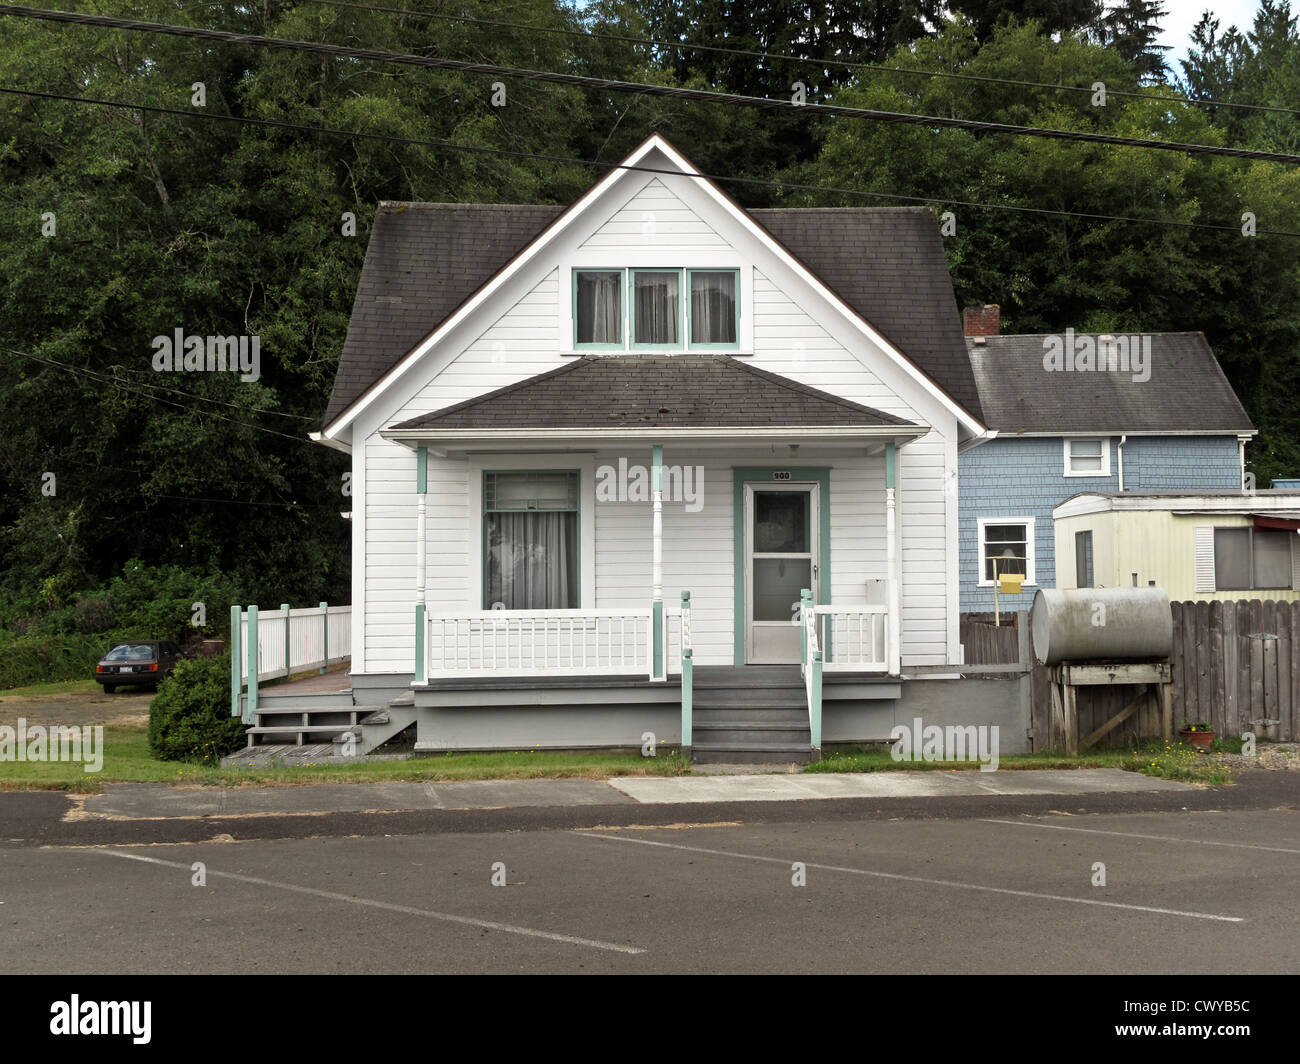 Small Simple White Clapboard Victorian Style House With Blue Trim Front Porch Cross Gable Roof